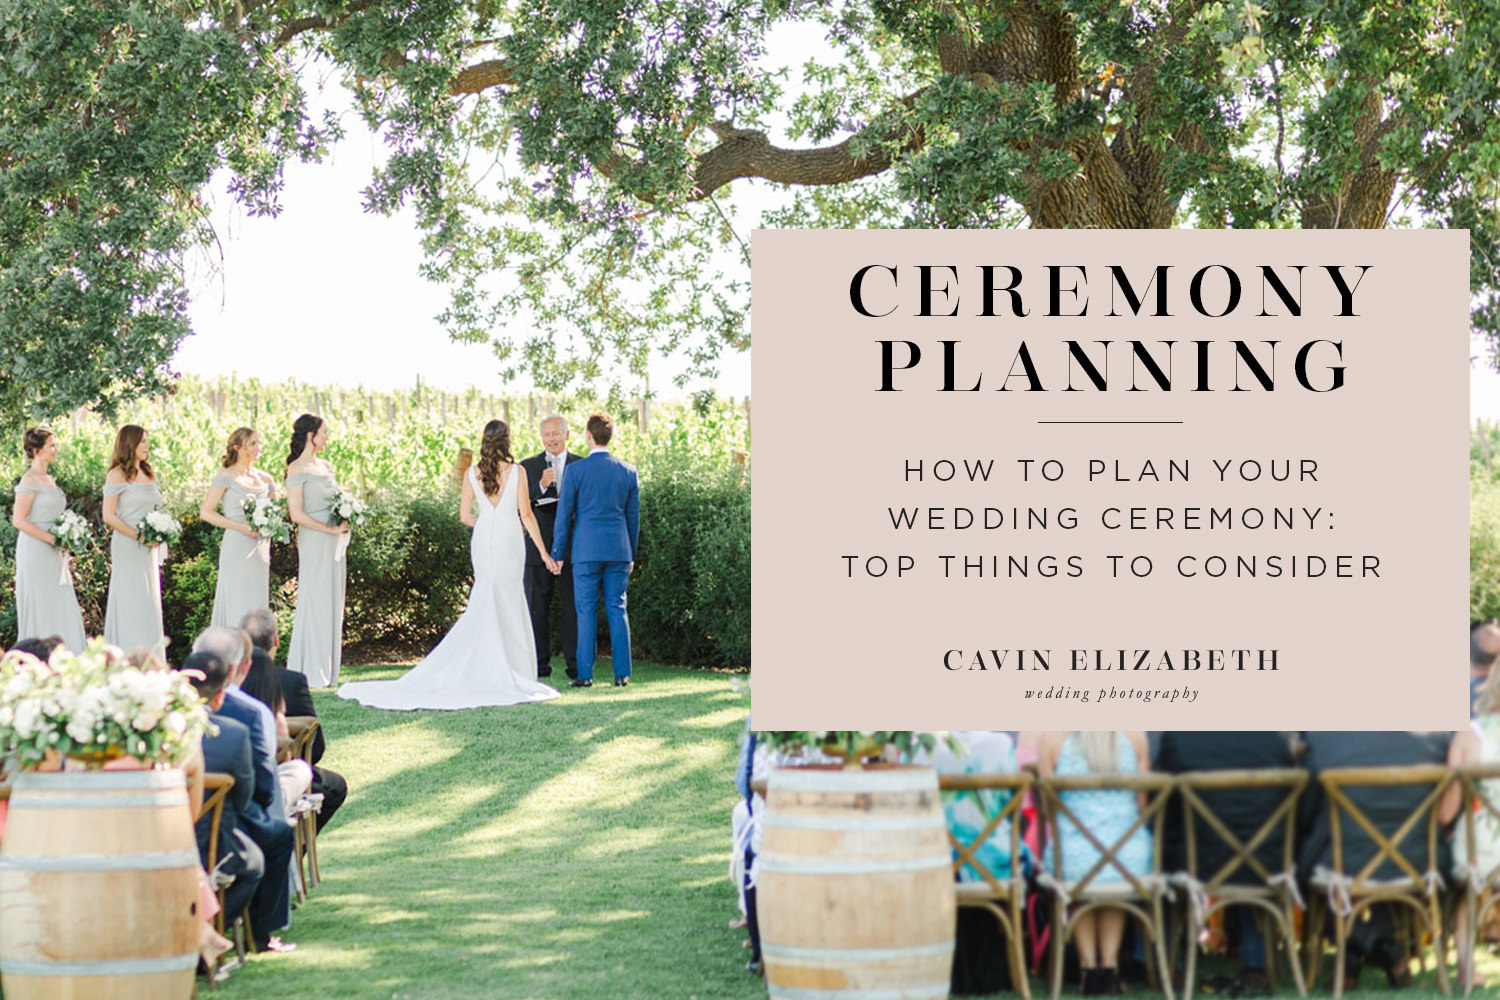 How to Plan Your Wedding Ceremony: Key Ceremony Elements